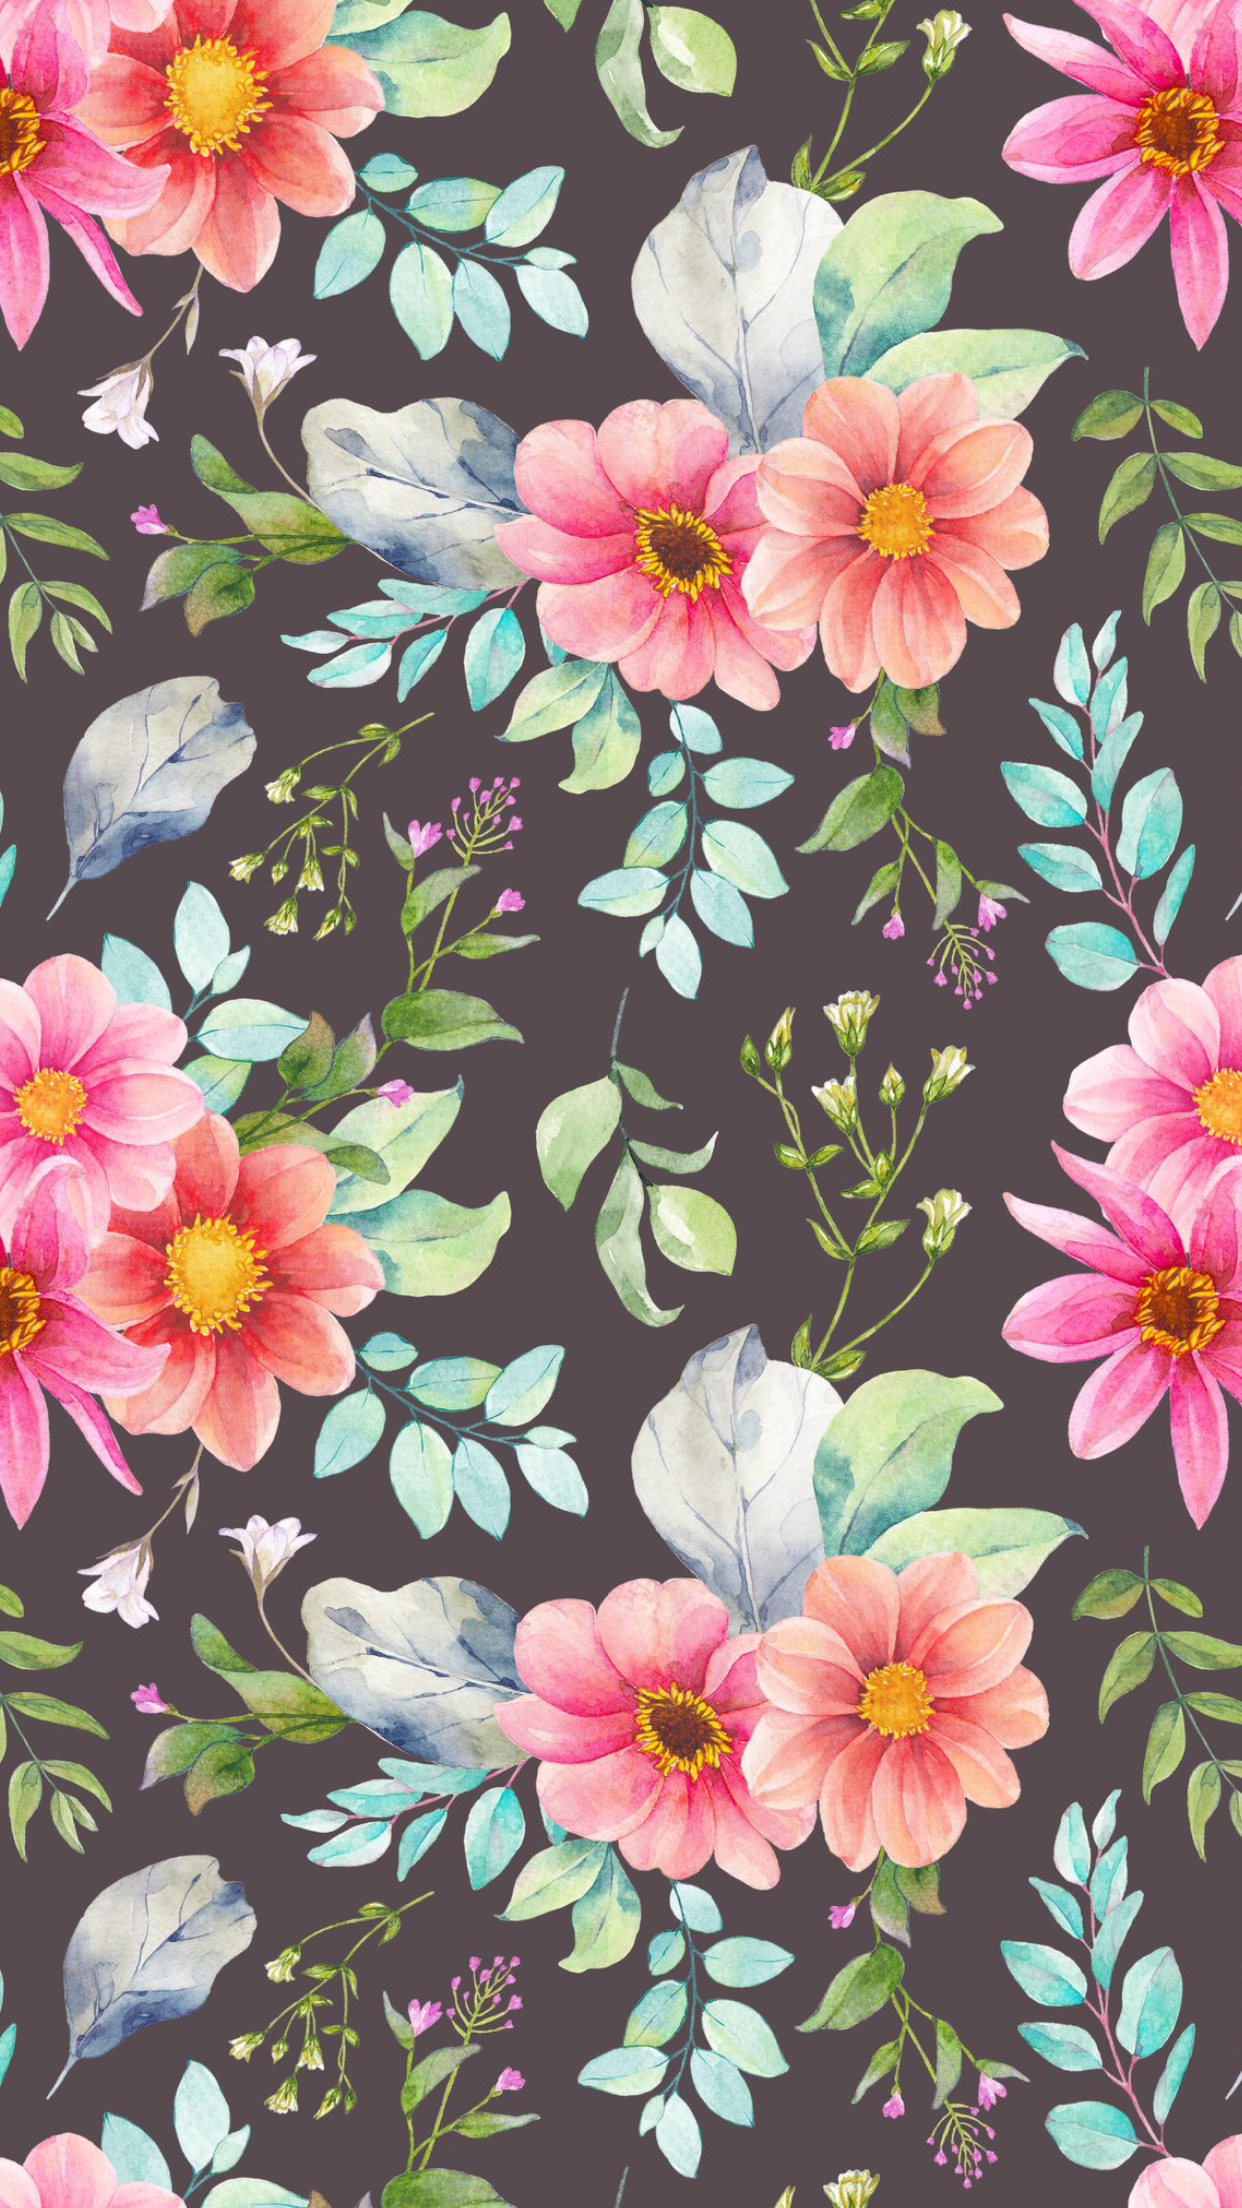 Floral Wallpaper 🌸 flower wallpaper background floral